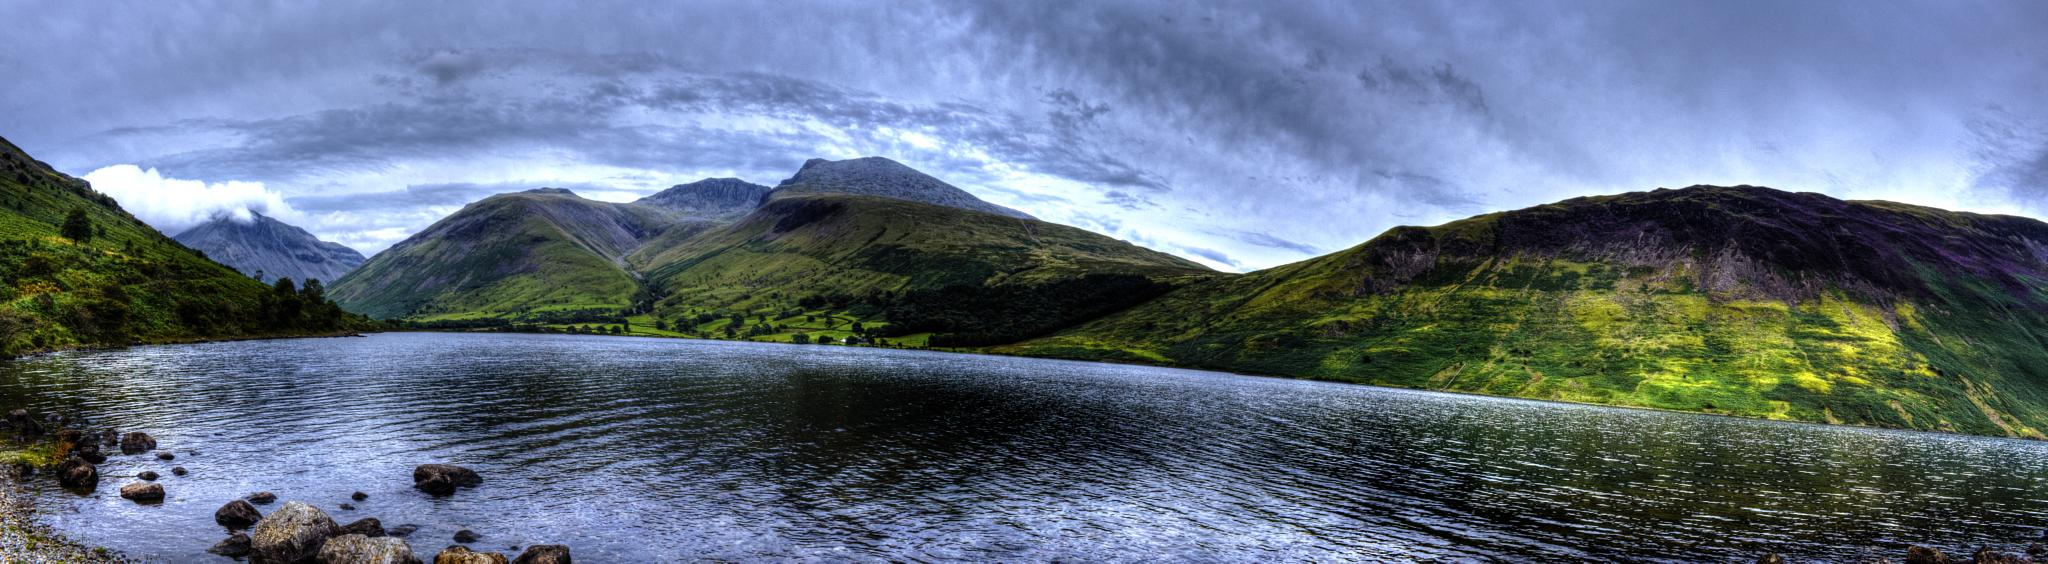 Wastwater by Chris Whittle Photos